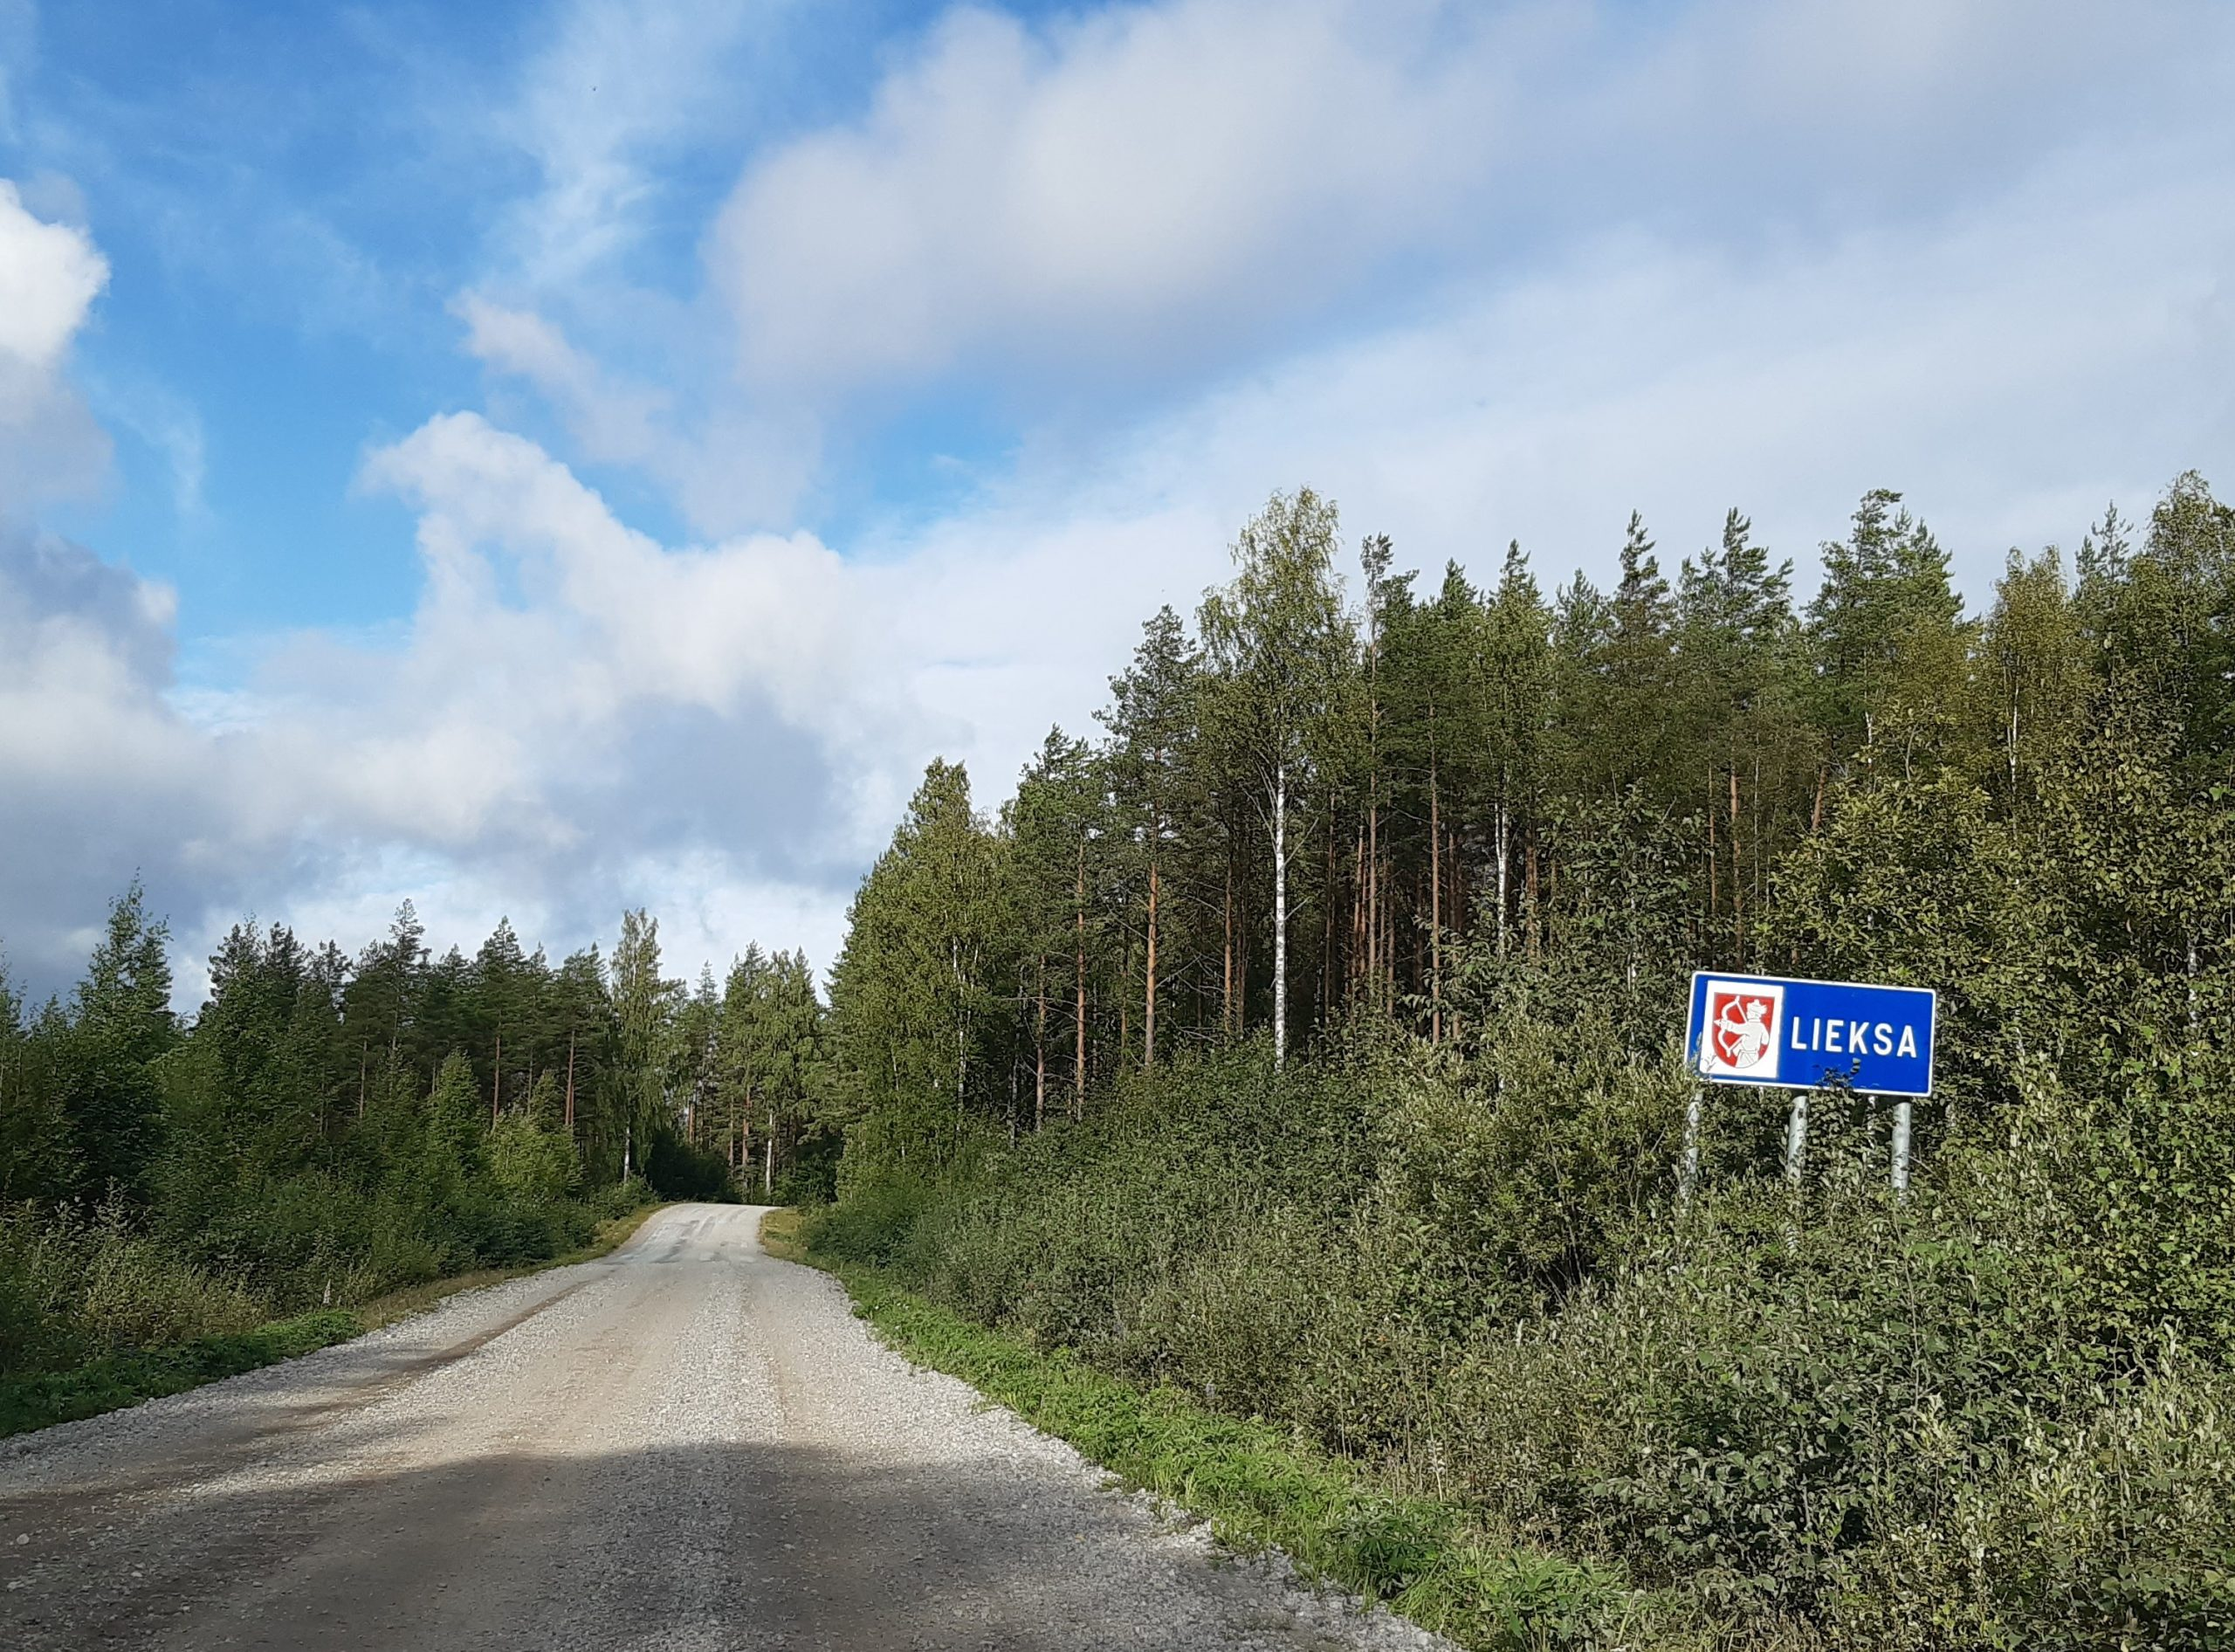 Image of a dirt road and a road sign that reads 'Lieksa'